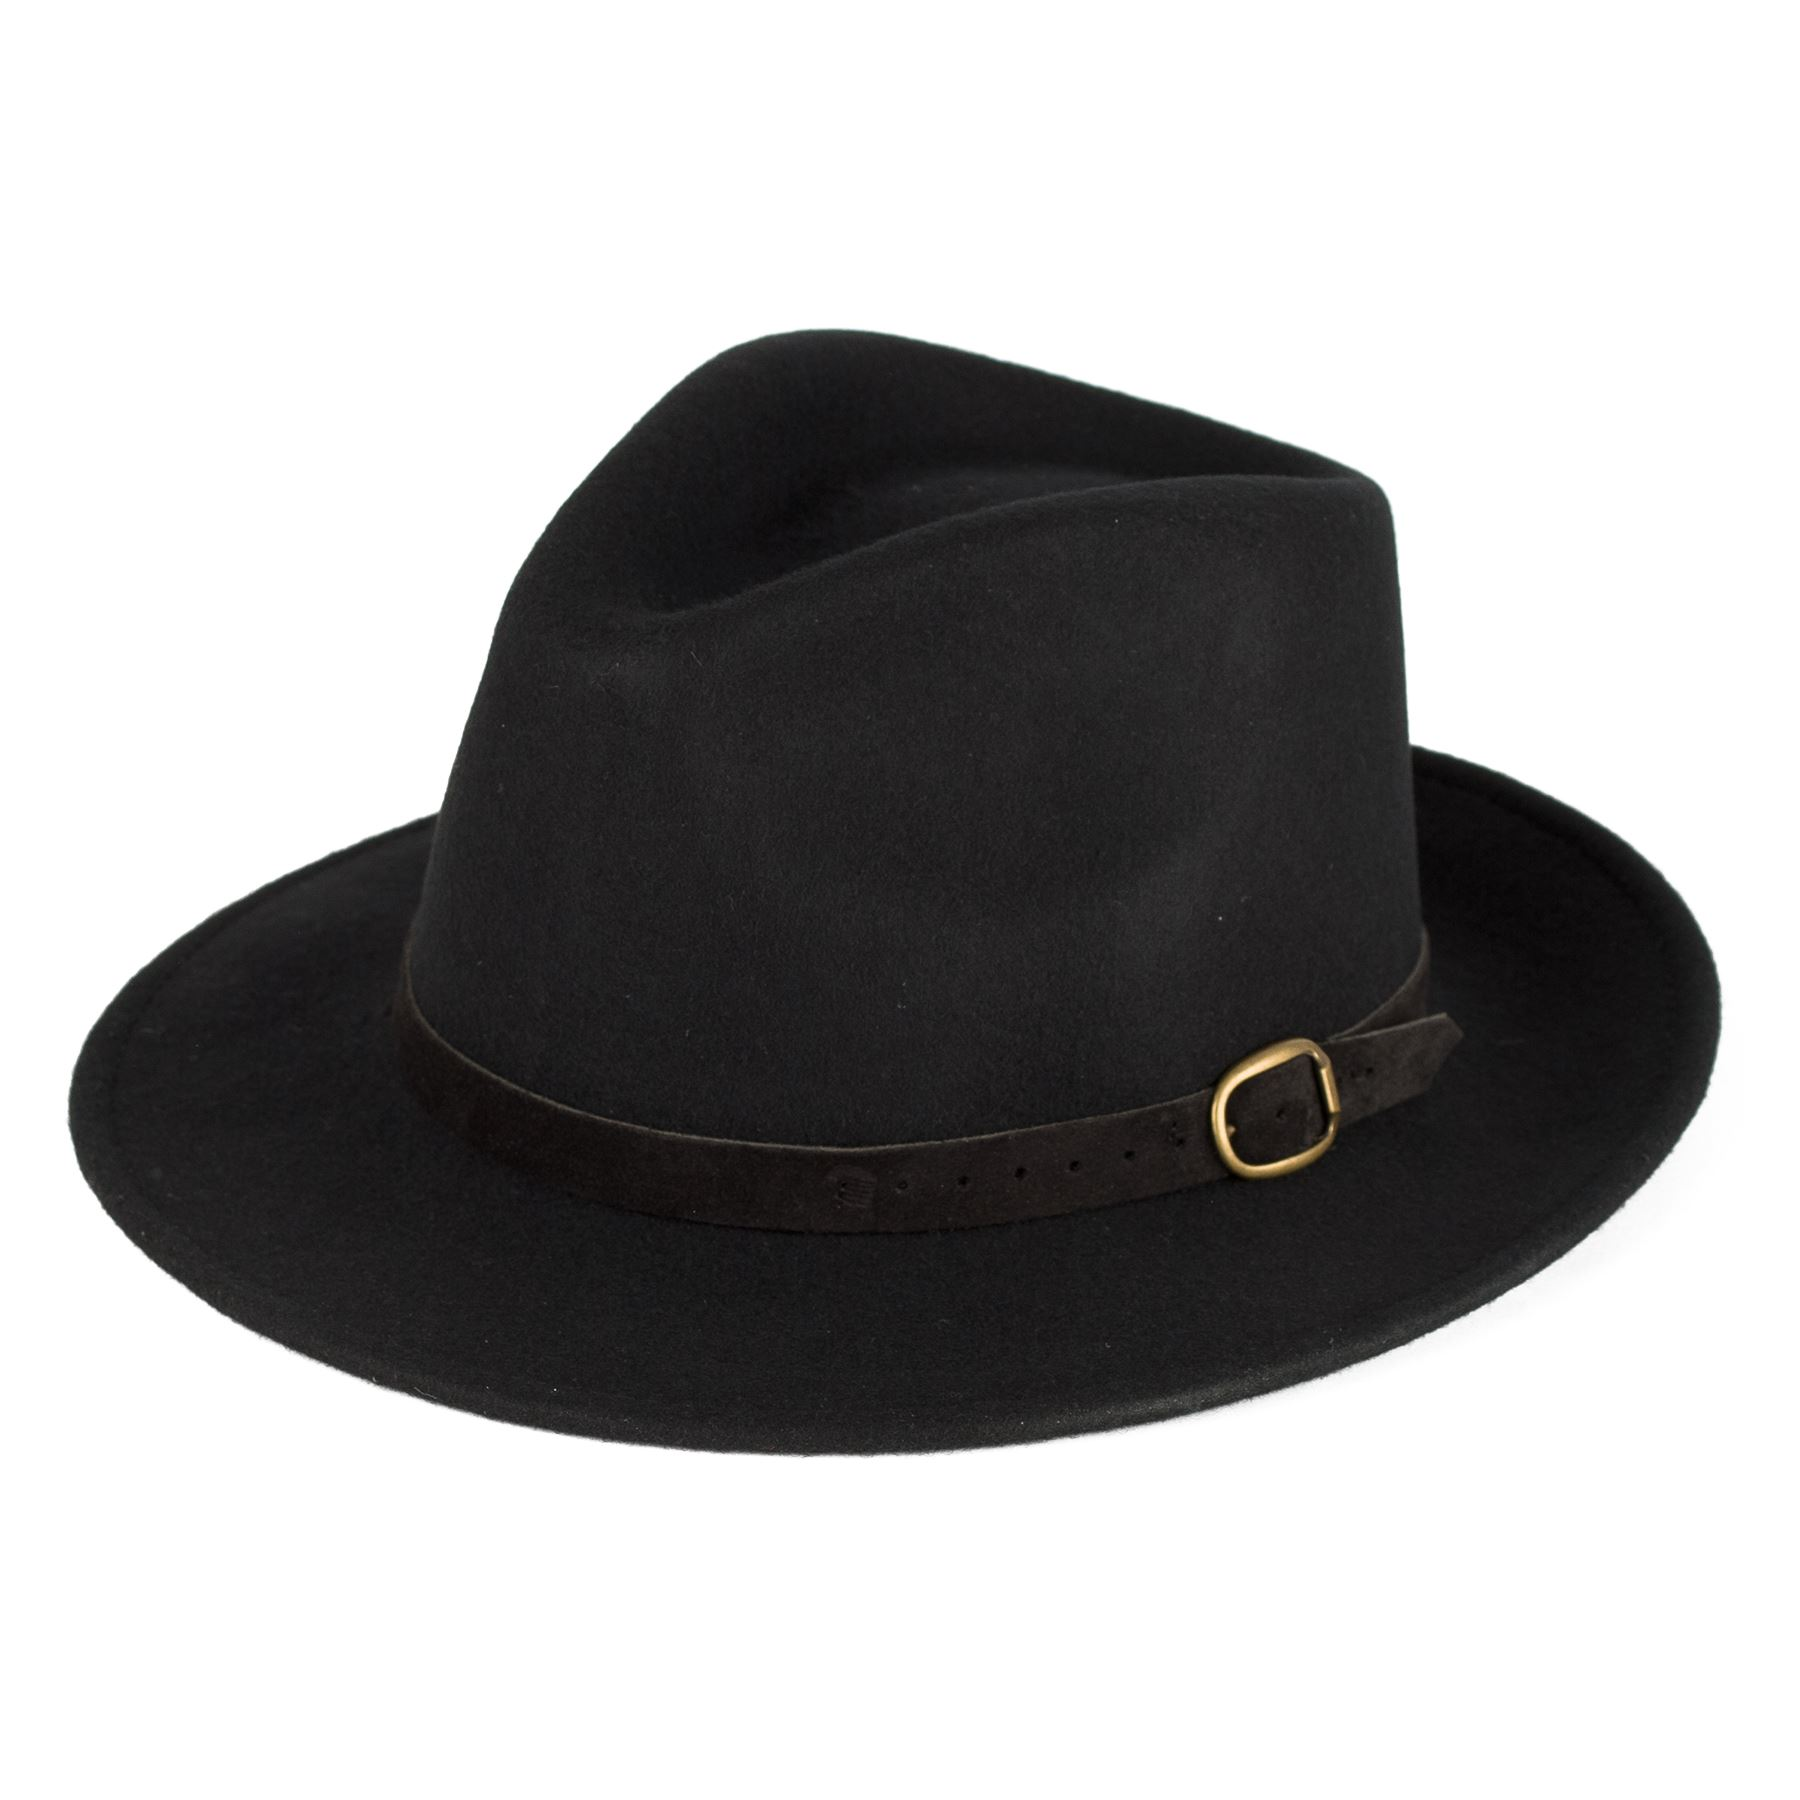 94fbb9f97cbf76 Men's Ladies Handmade Fedora Hat Made in Italy 100 Wool Felt With ...